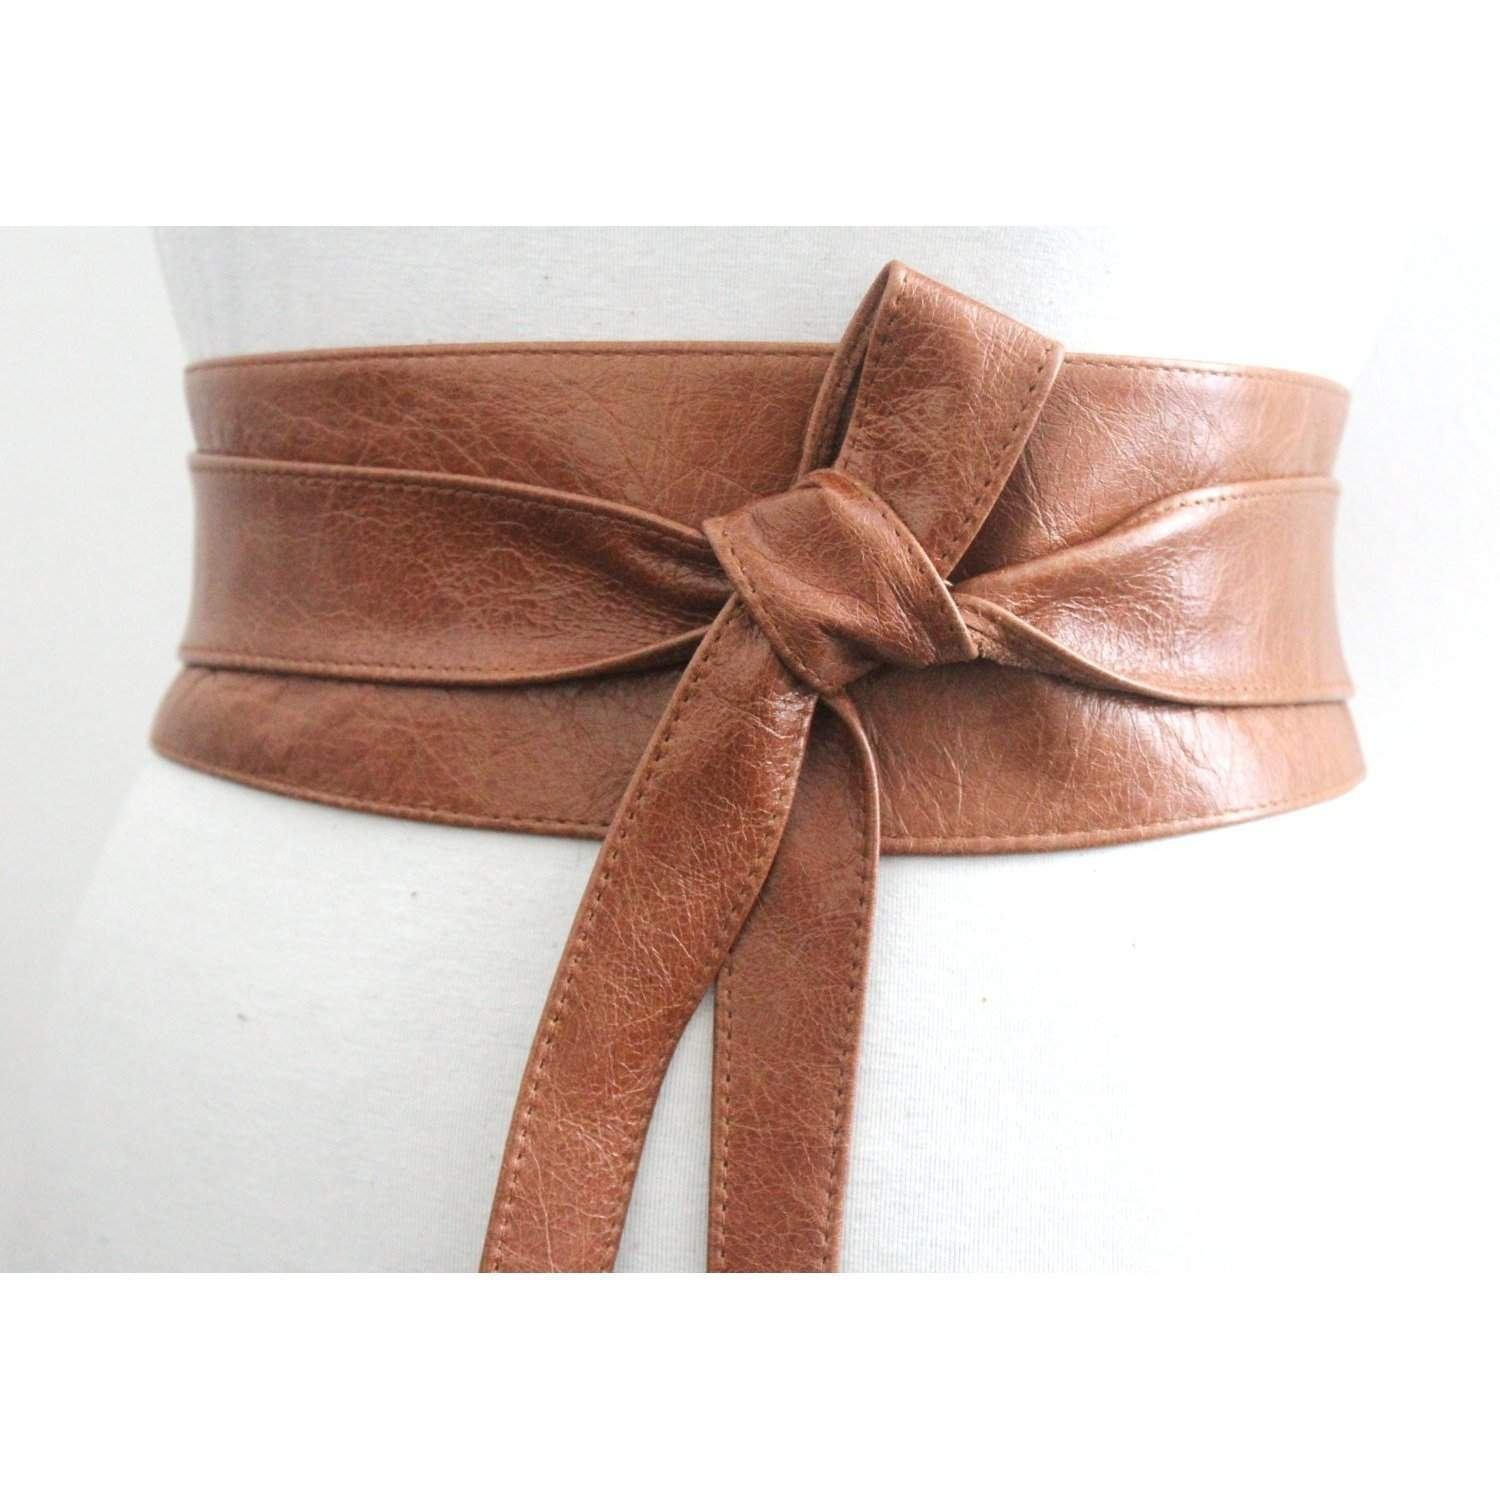 Distressed Tan Brown Leather Obi Belt, Western Belt, Womens Leather Belt,  Bridesmaid Belt, Tan Belt - loveyaayaa